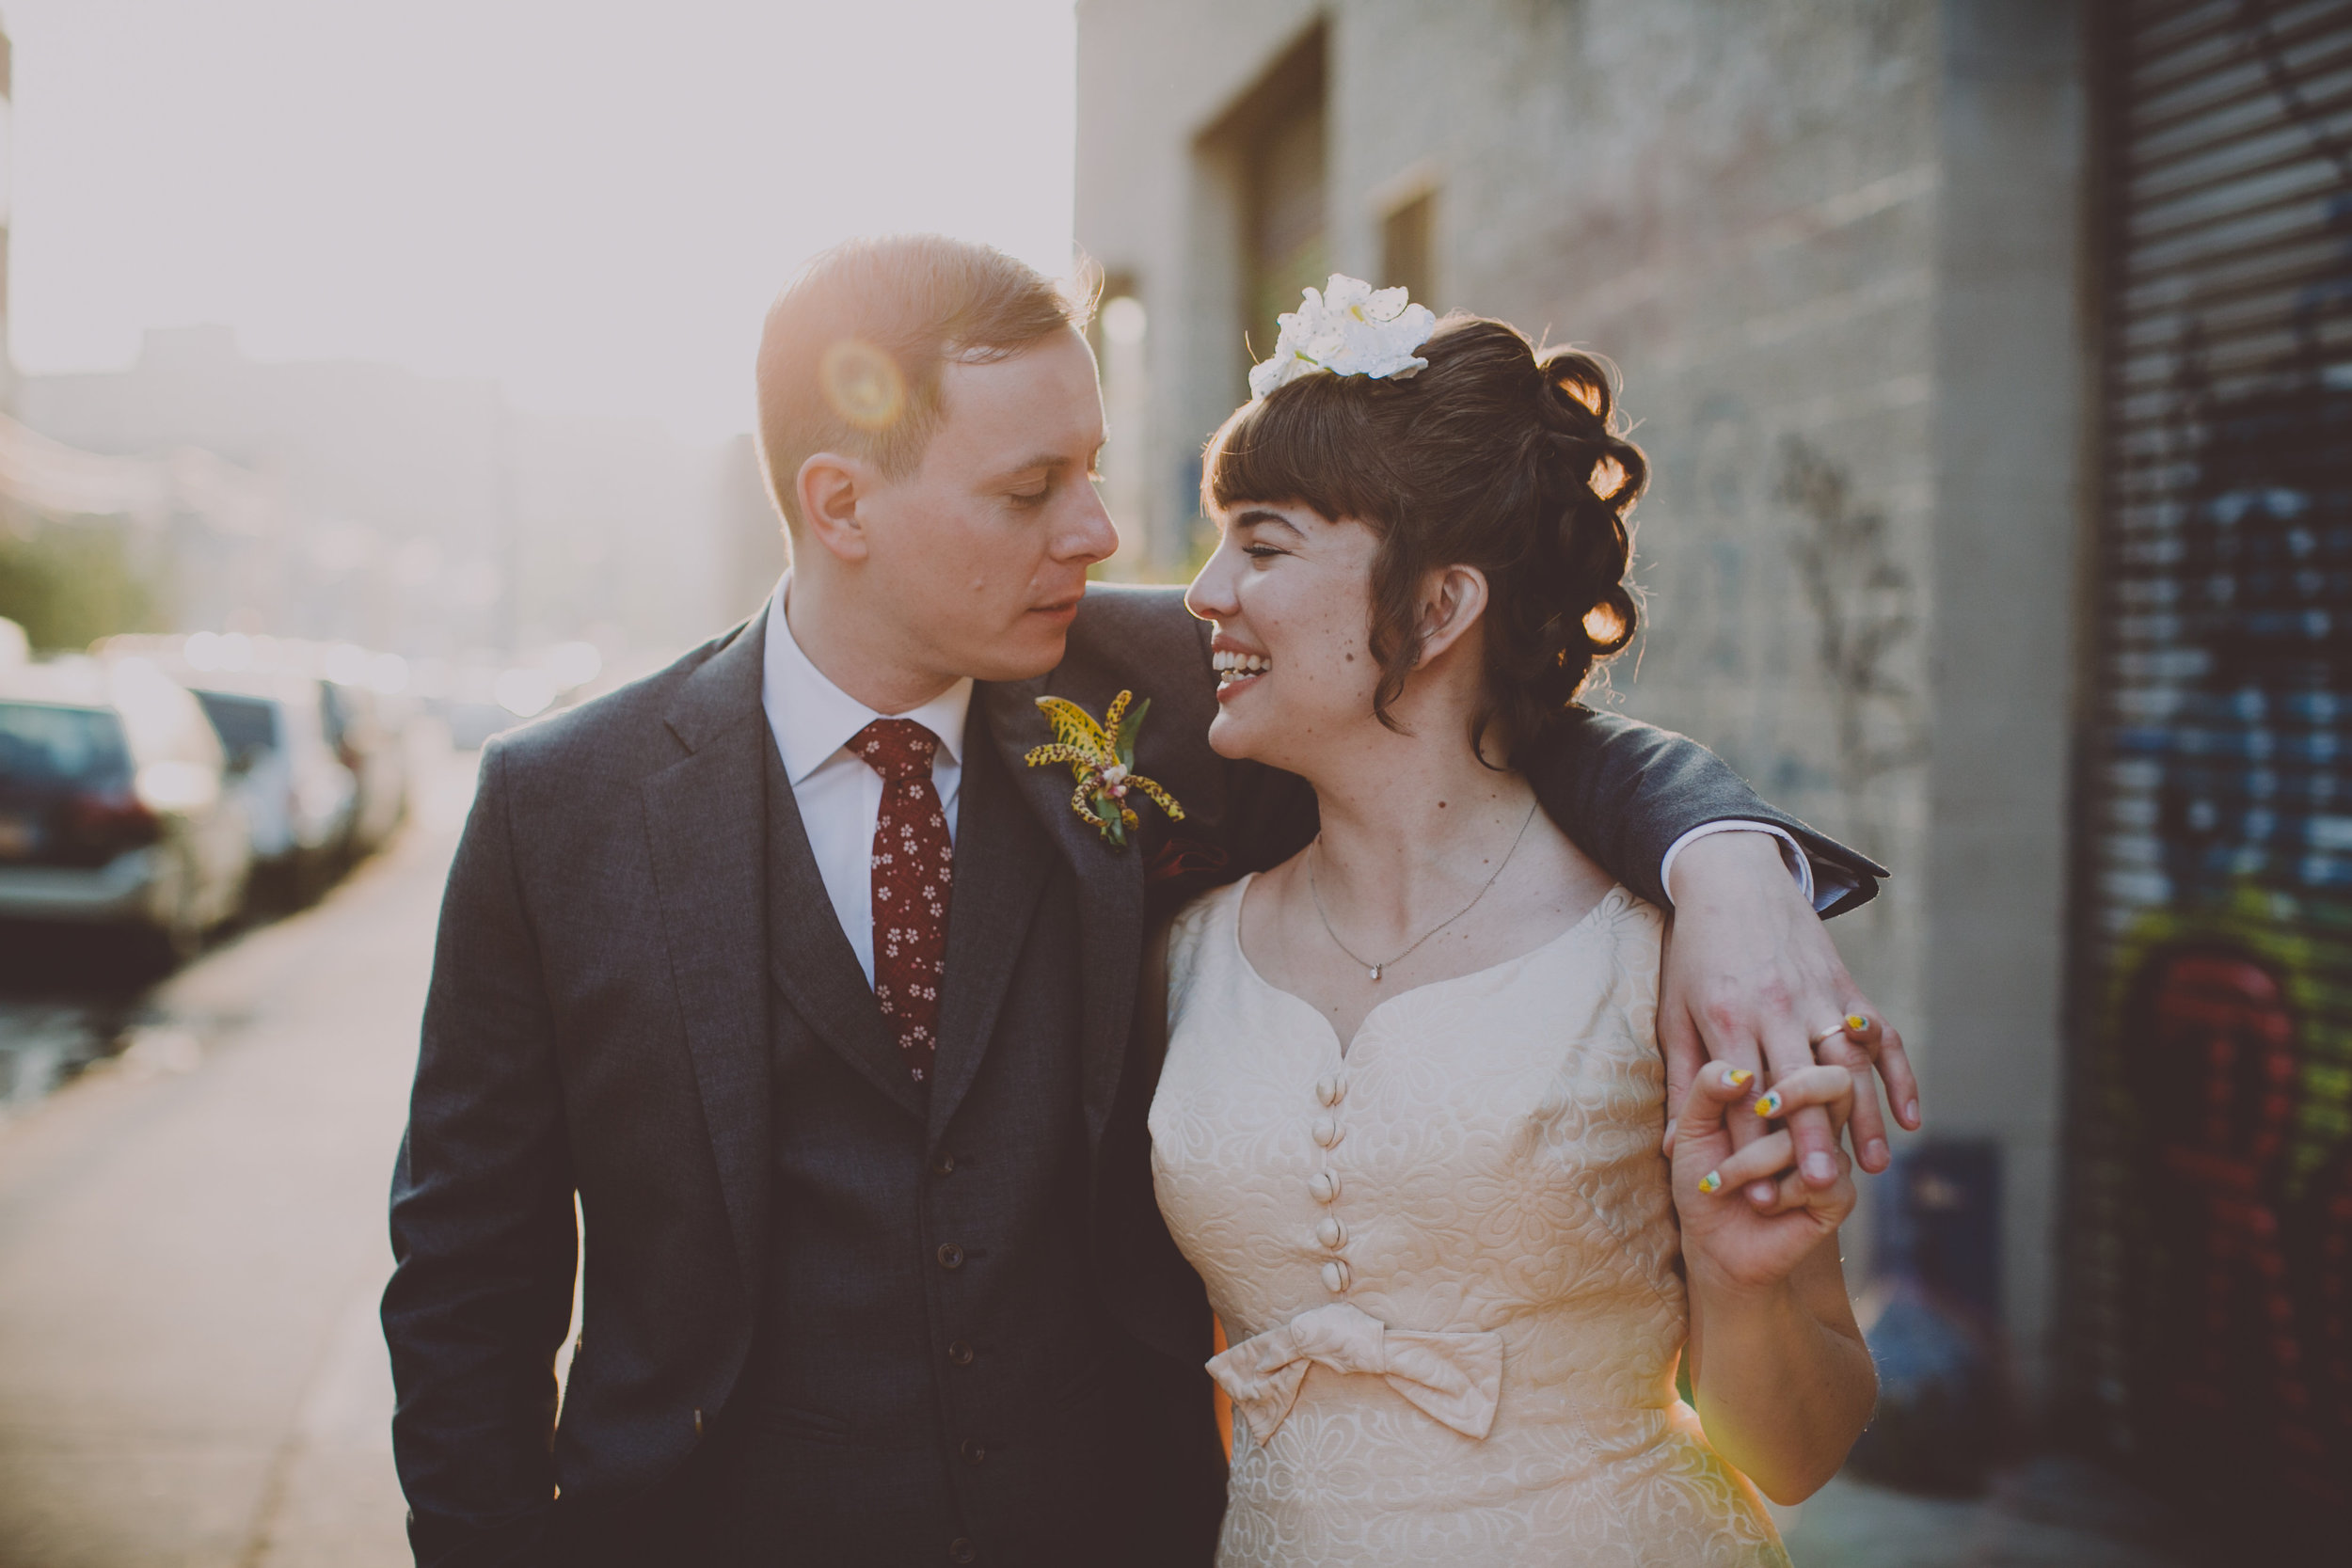 Robertas_Bushwick_Wedding_Tiki_Photography328.JPG